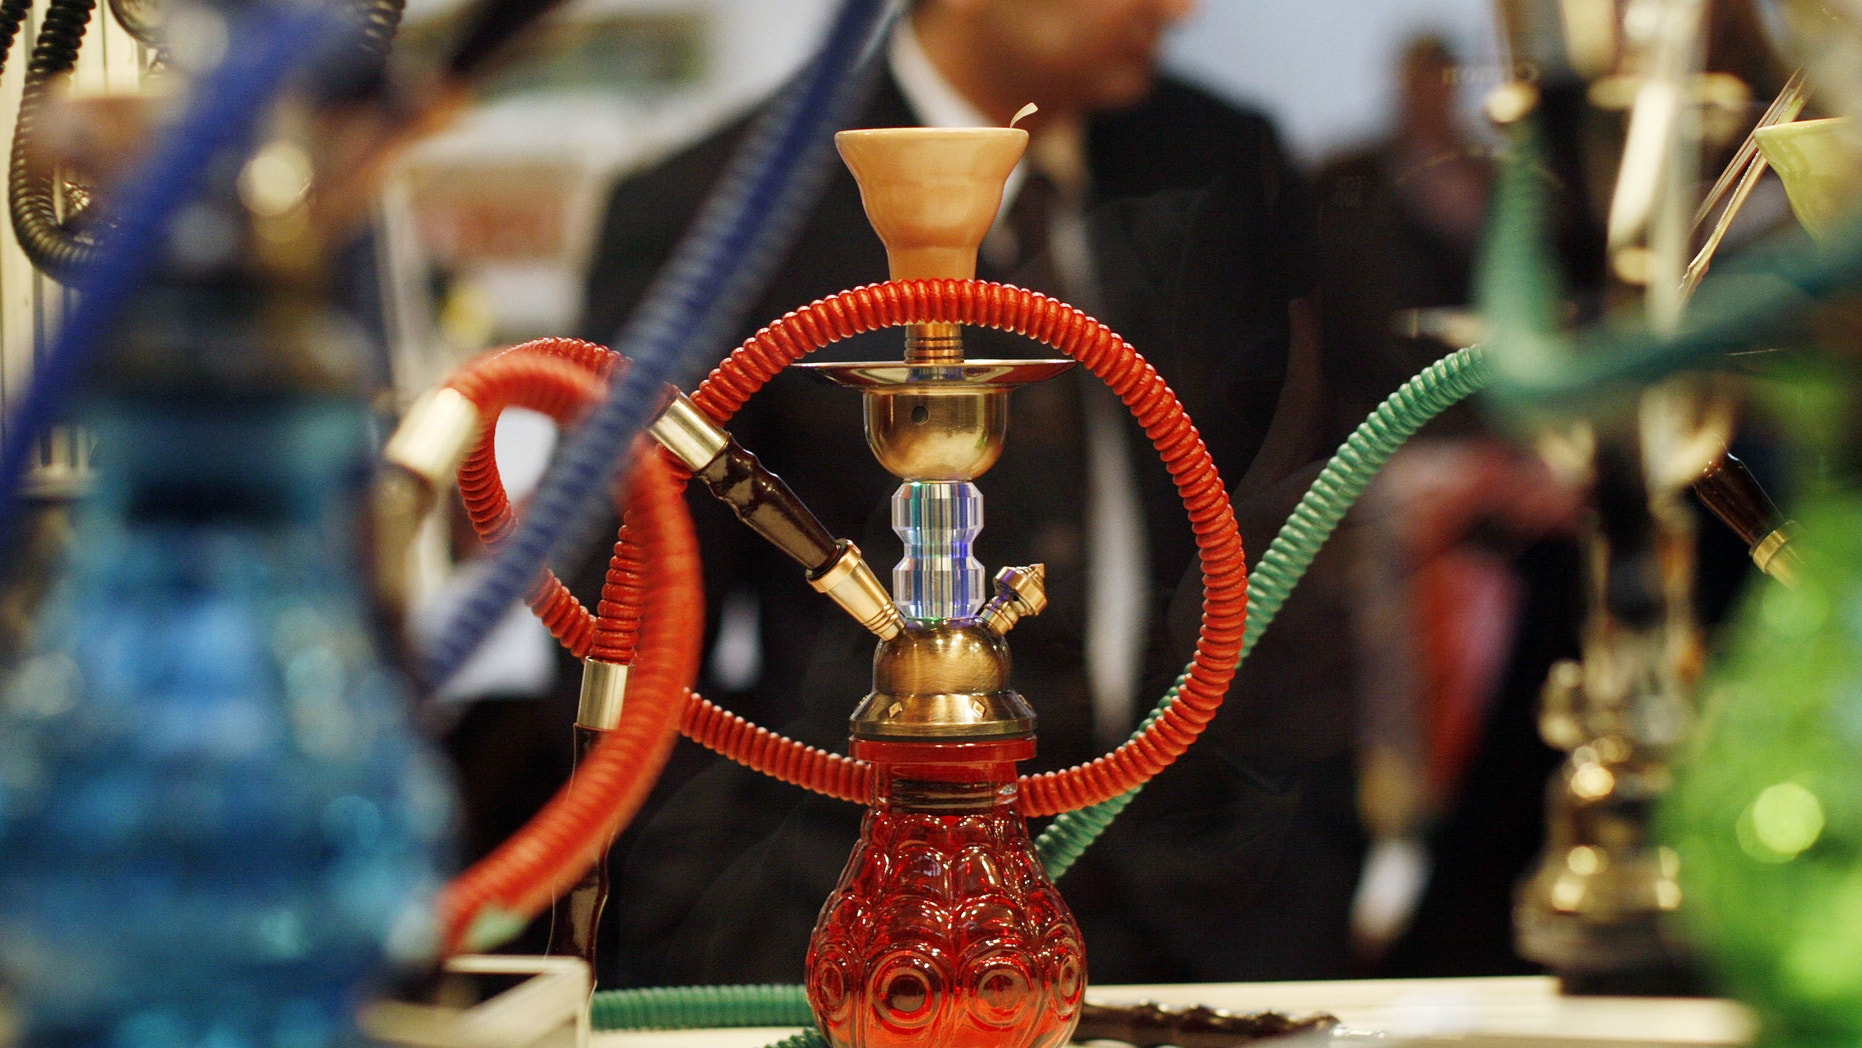 Smoking hookah not safe alternative to cigarettes